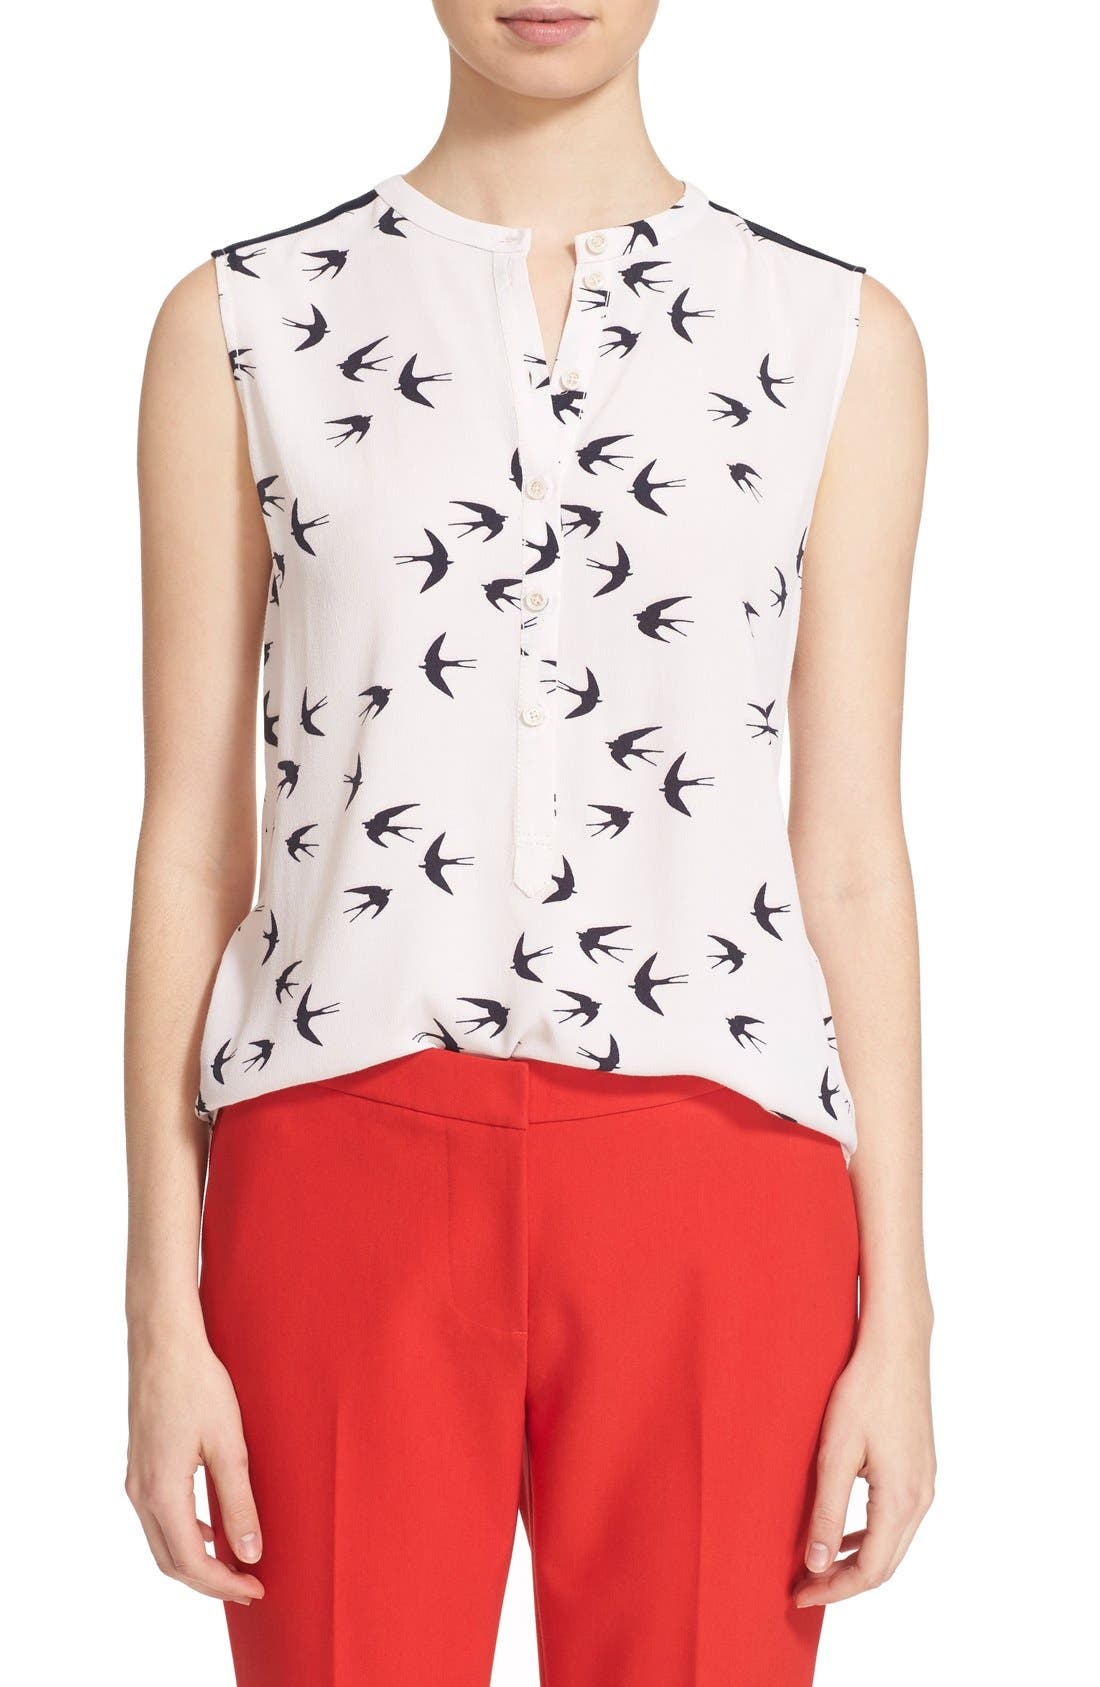 Main Image - kate spade new york 'winter' sleeveless top